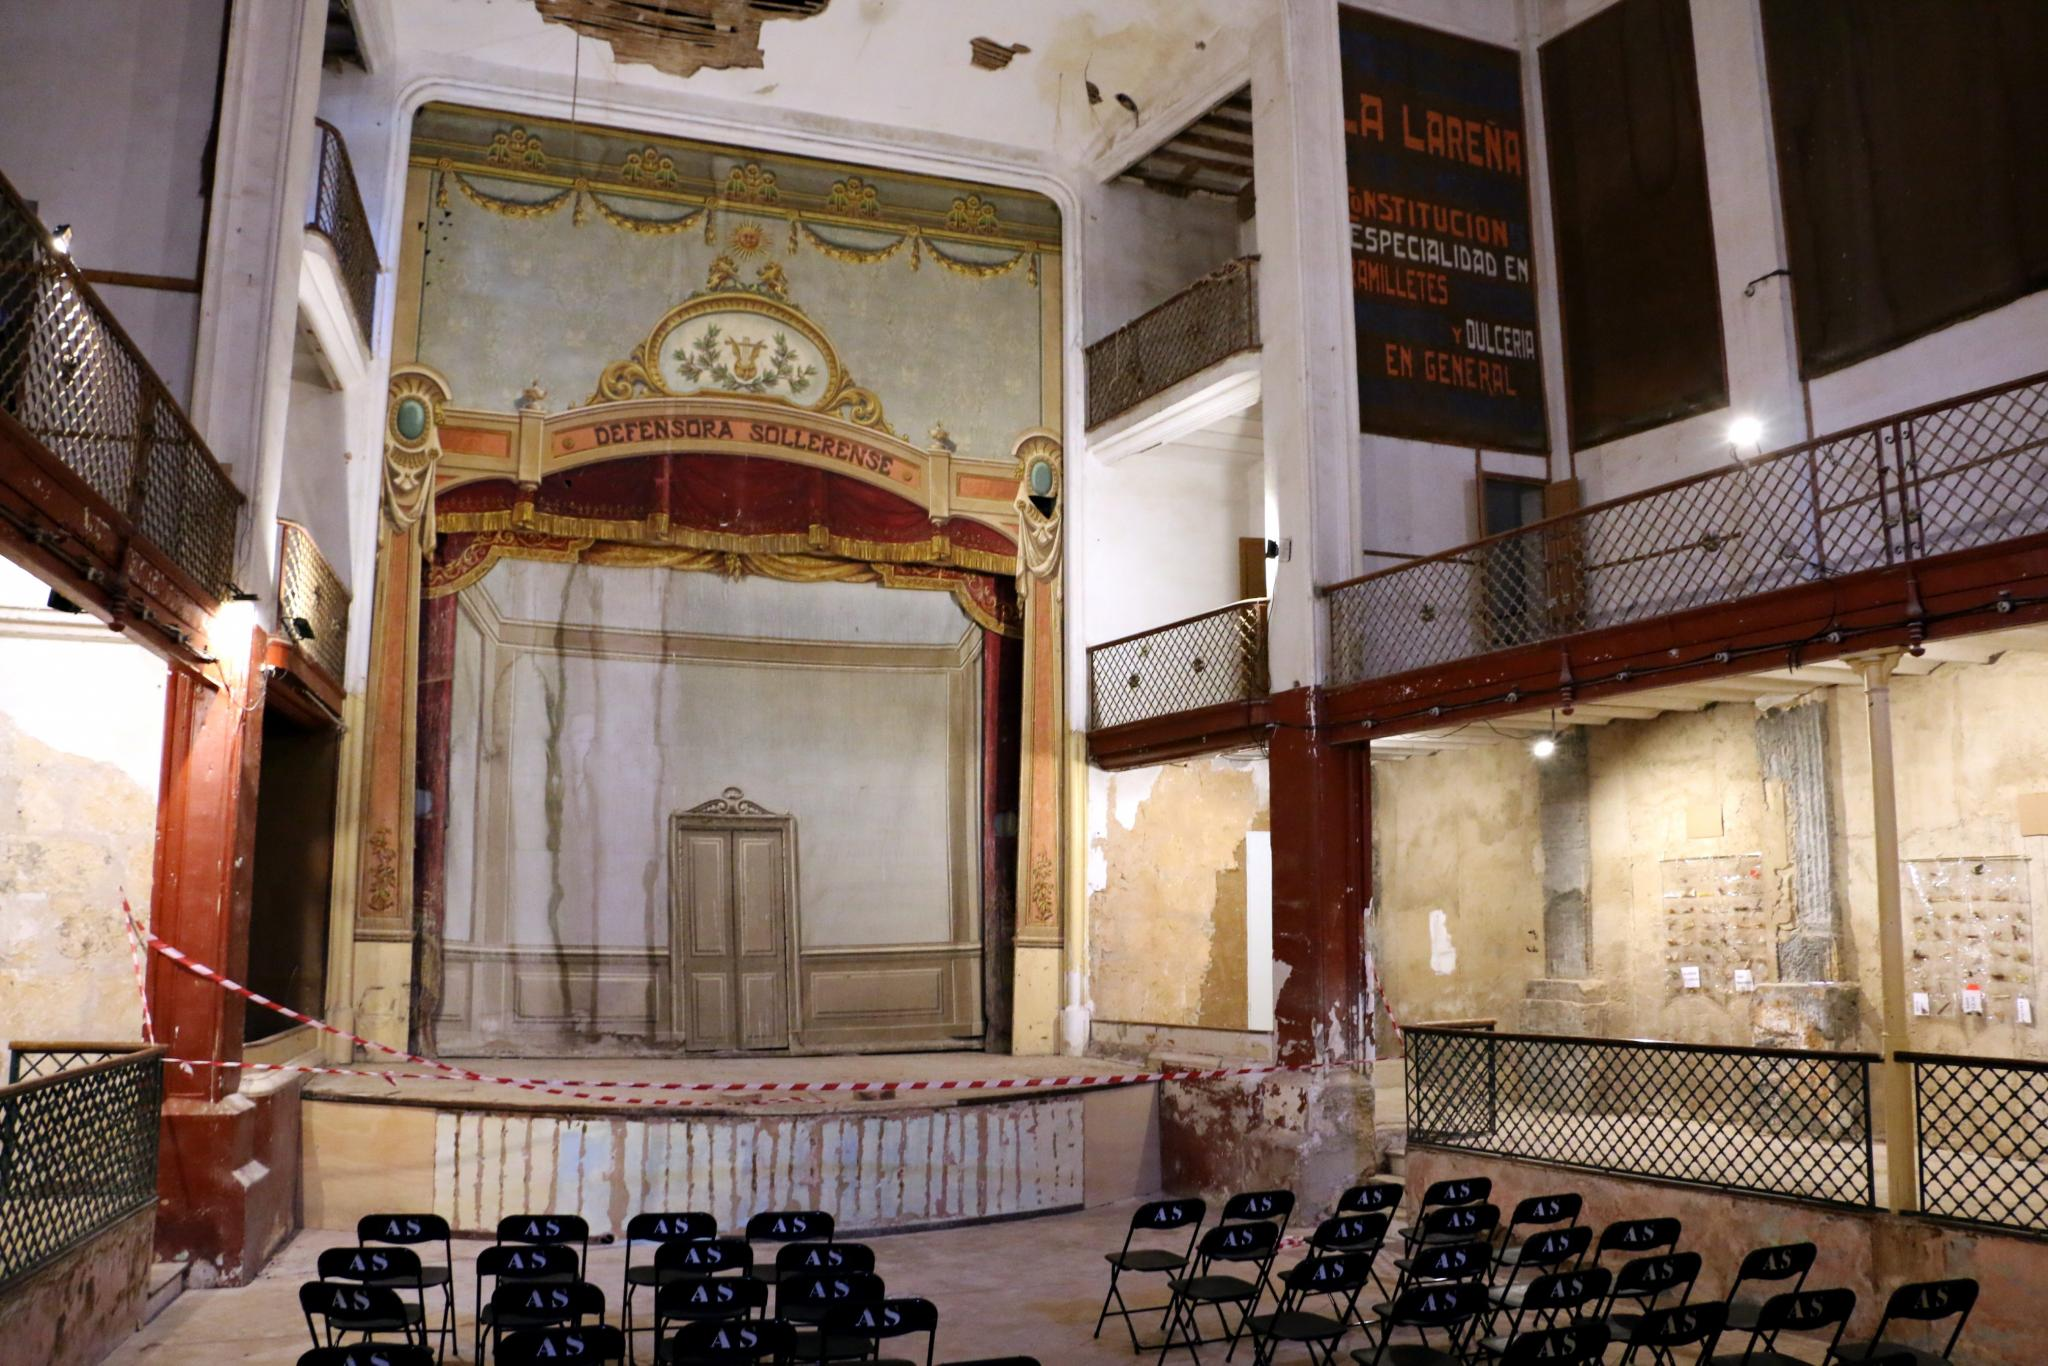 The stage at the old theatre in Soller